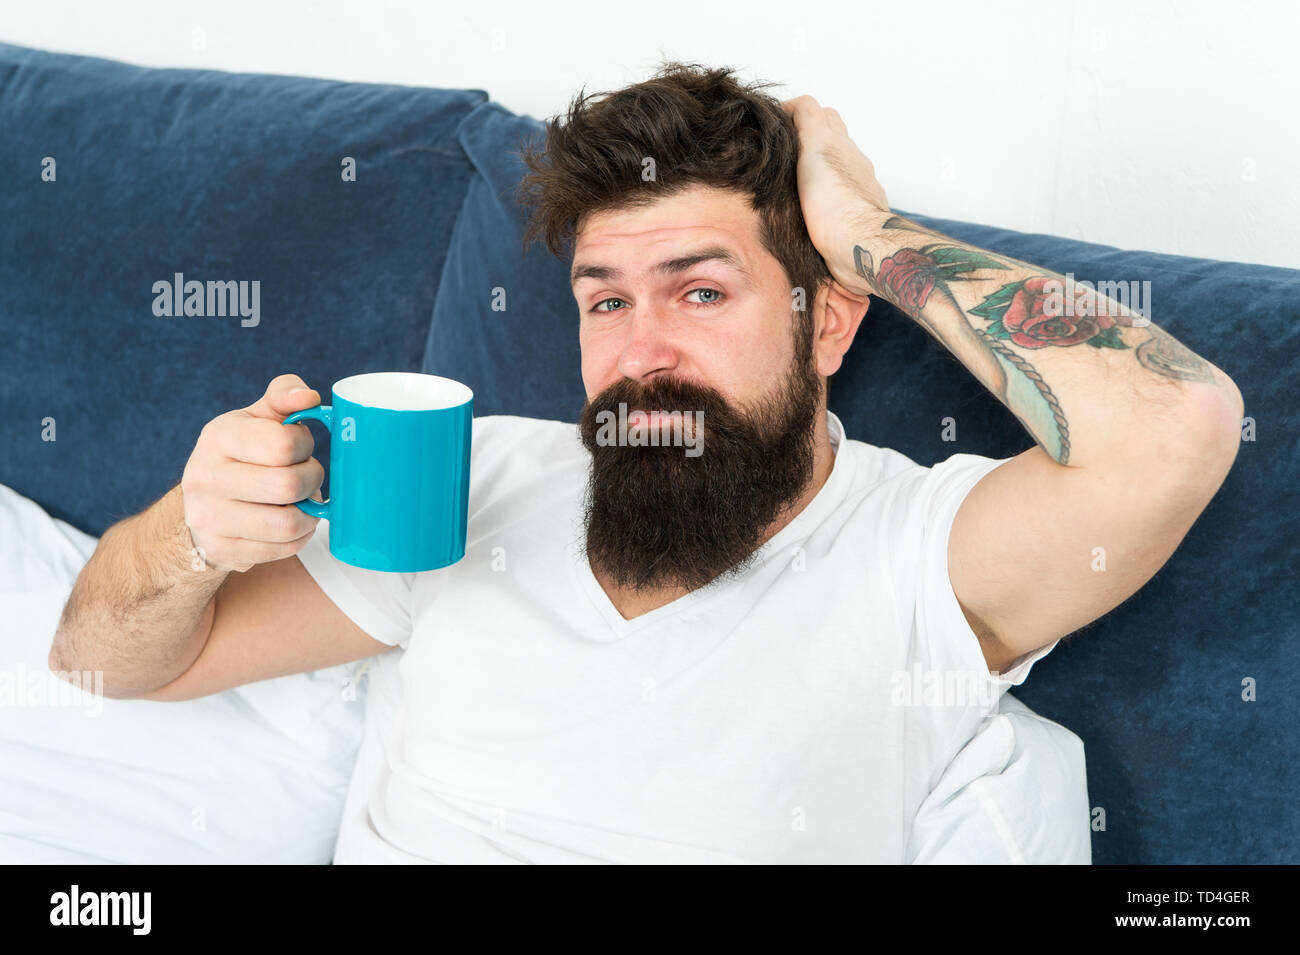 Tune in to new day. Morning awakening better with cup coffee. Relax and rest. Humanity runs on coffee. Man brutal handsome hipster relaxing bedroom drink coffee. Bearded guy enjoy morning coffee. - Stock Image